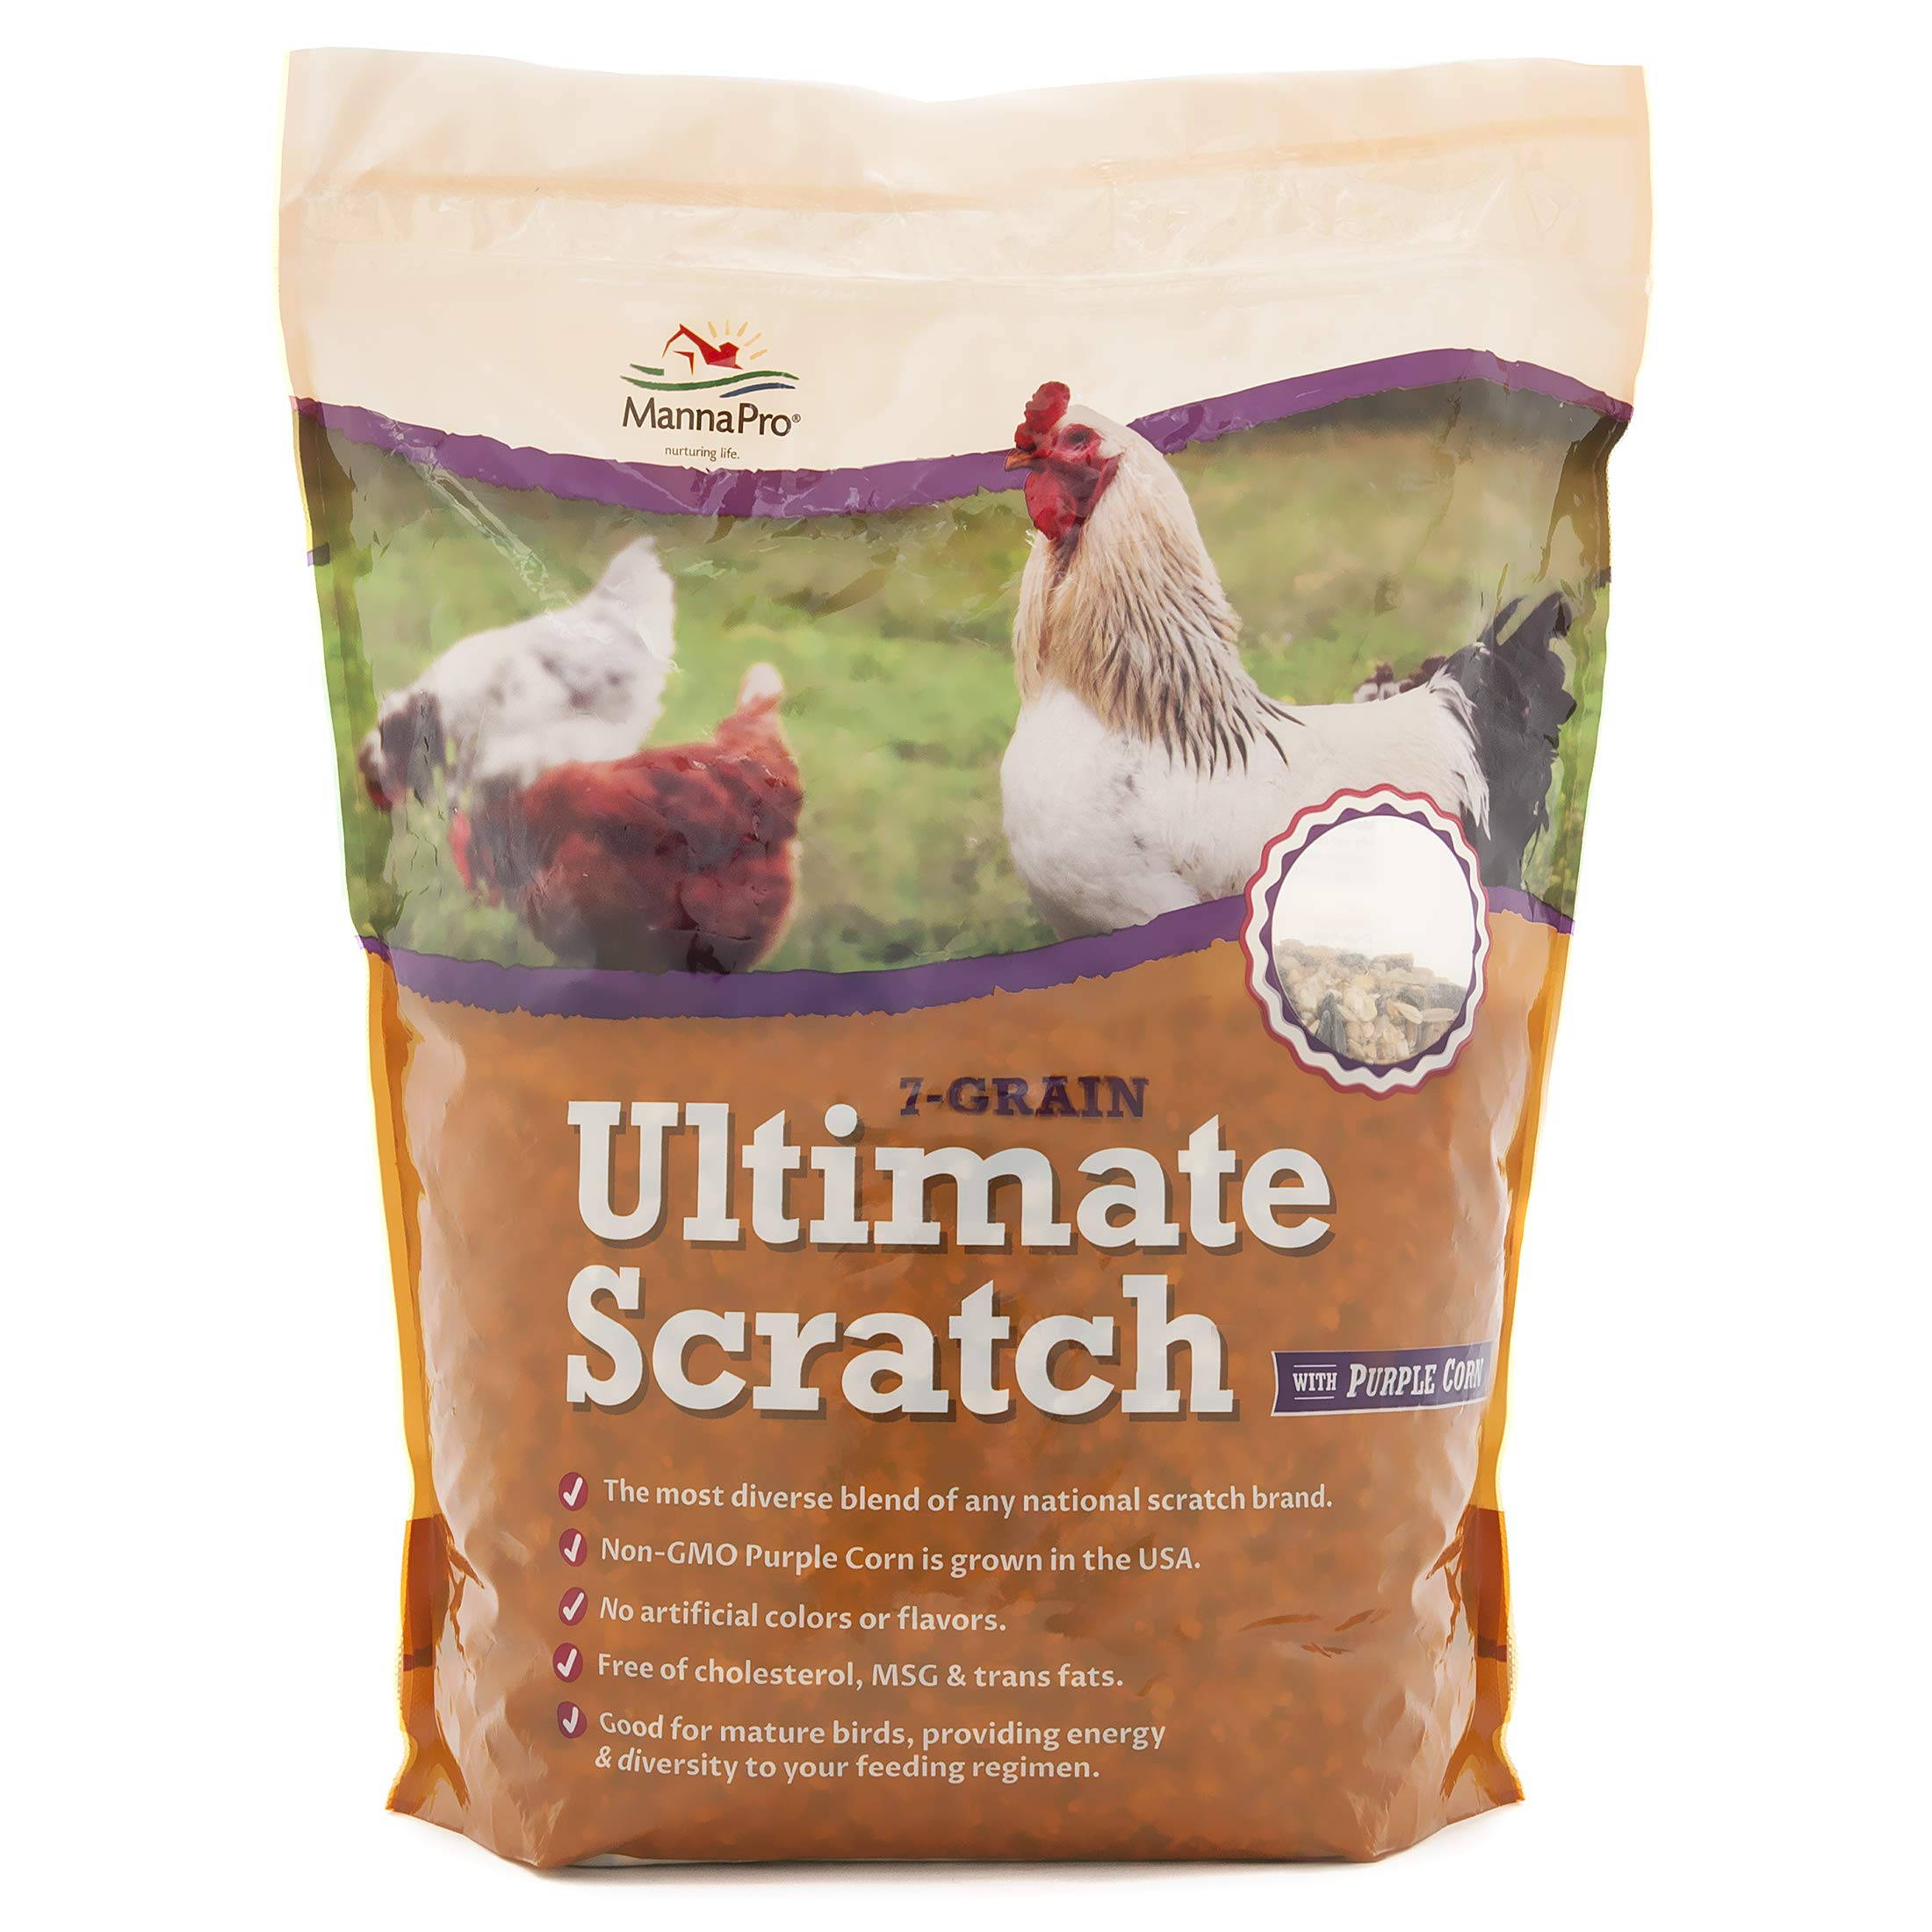 Manna Pro 1000853 Chickens, 10 lb 7 Grain Ultimate Scratch with Purple Corn, Original Version by Manna Pro